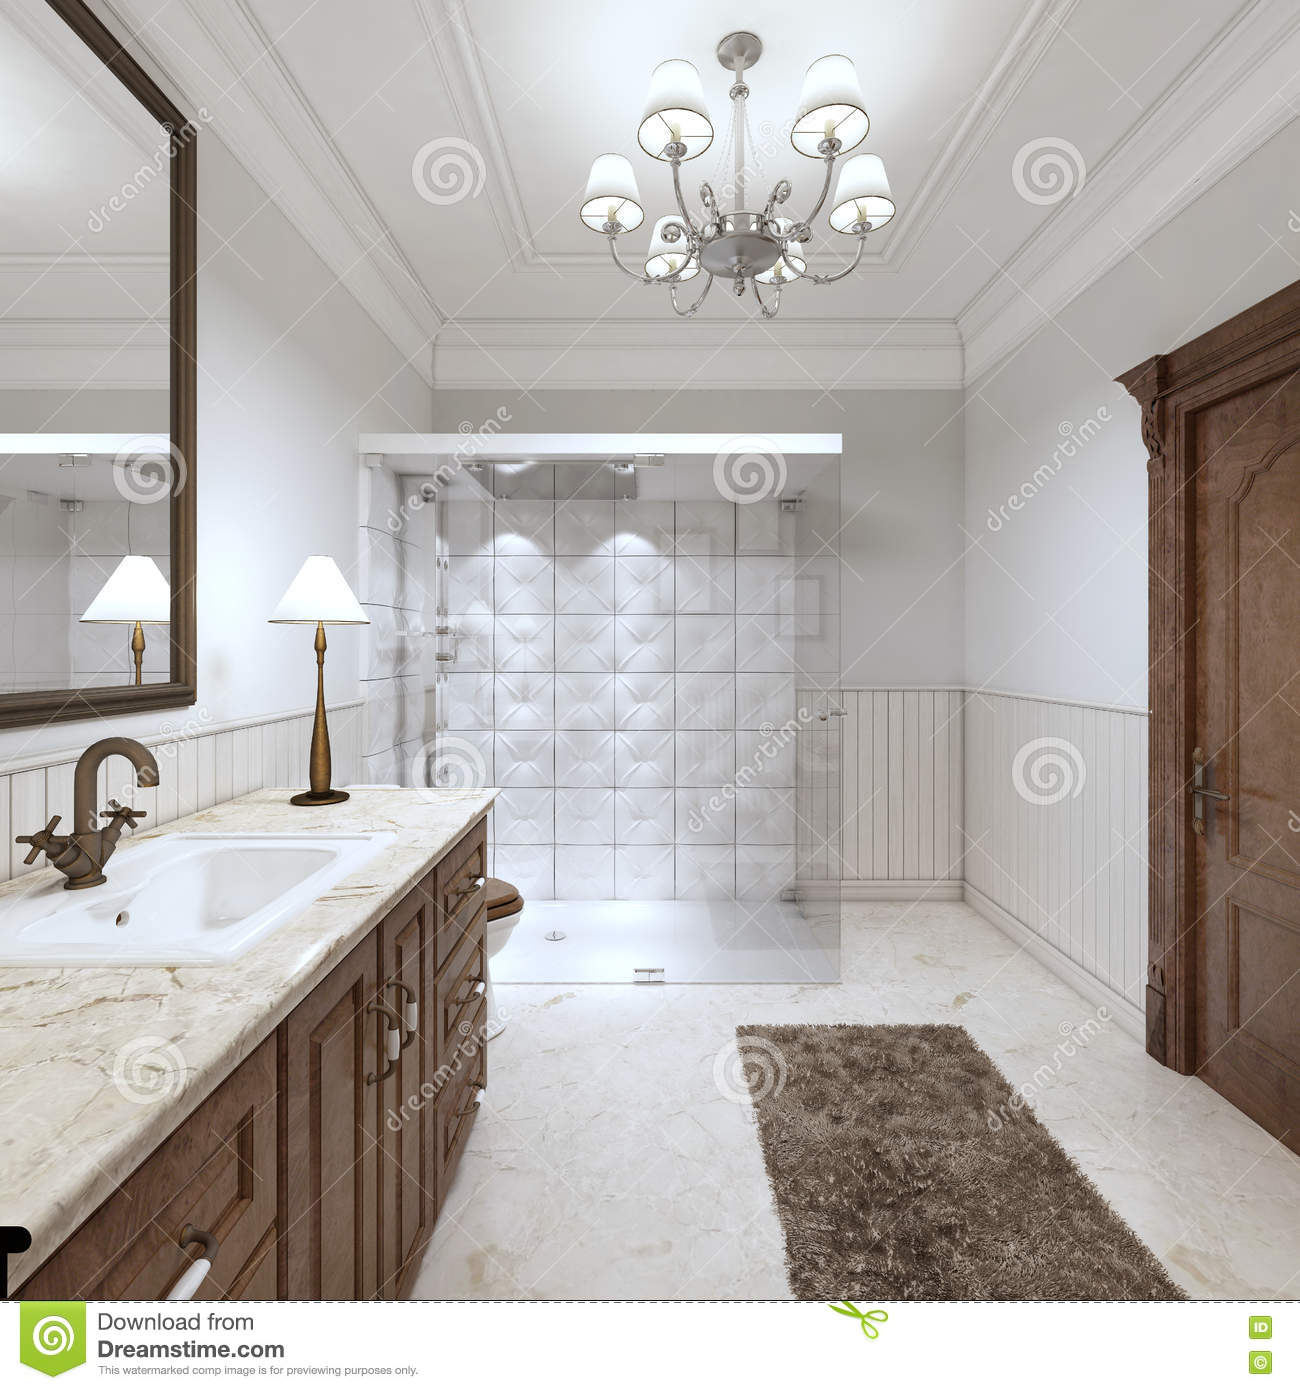 Bright Bathroom In The English Style With Large Glass Shower. Stock ...